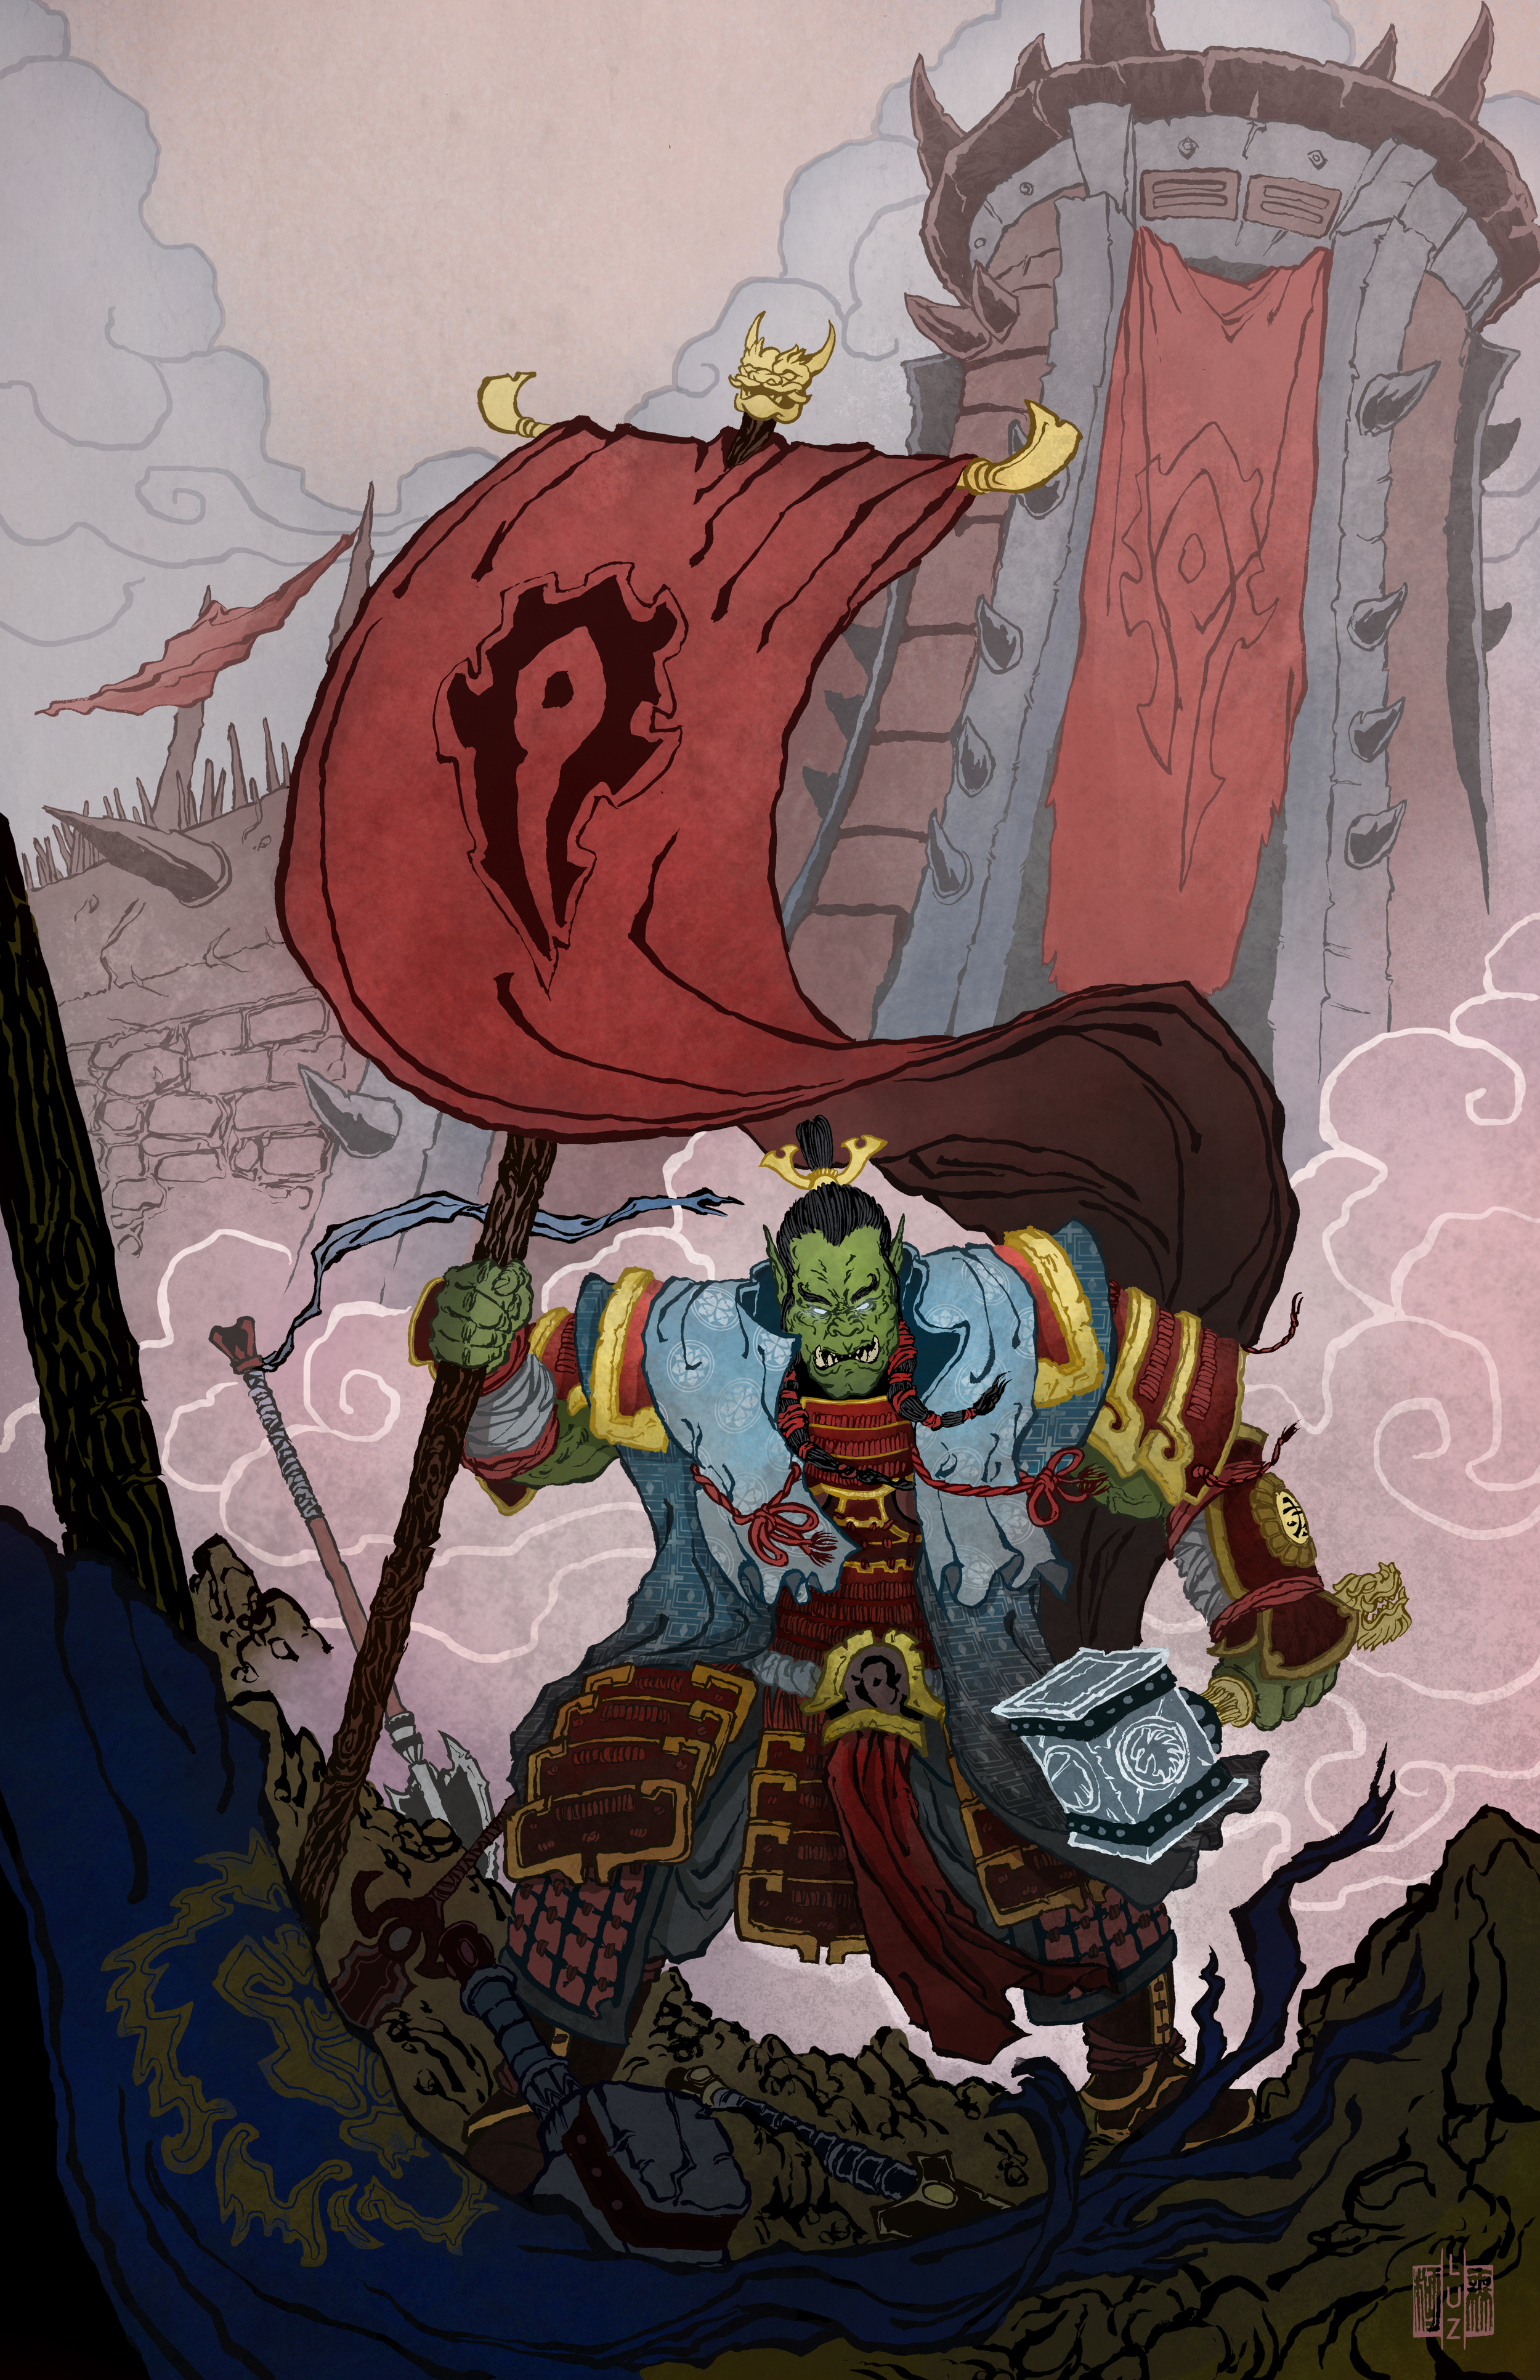 Thrall the Warchief